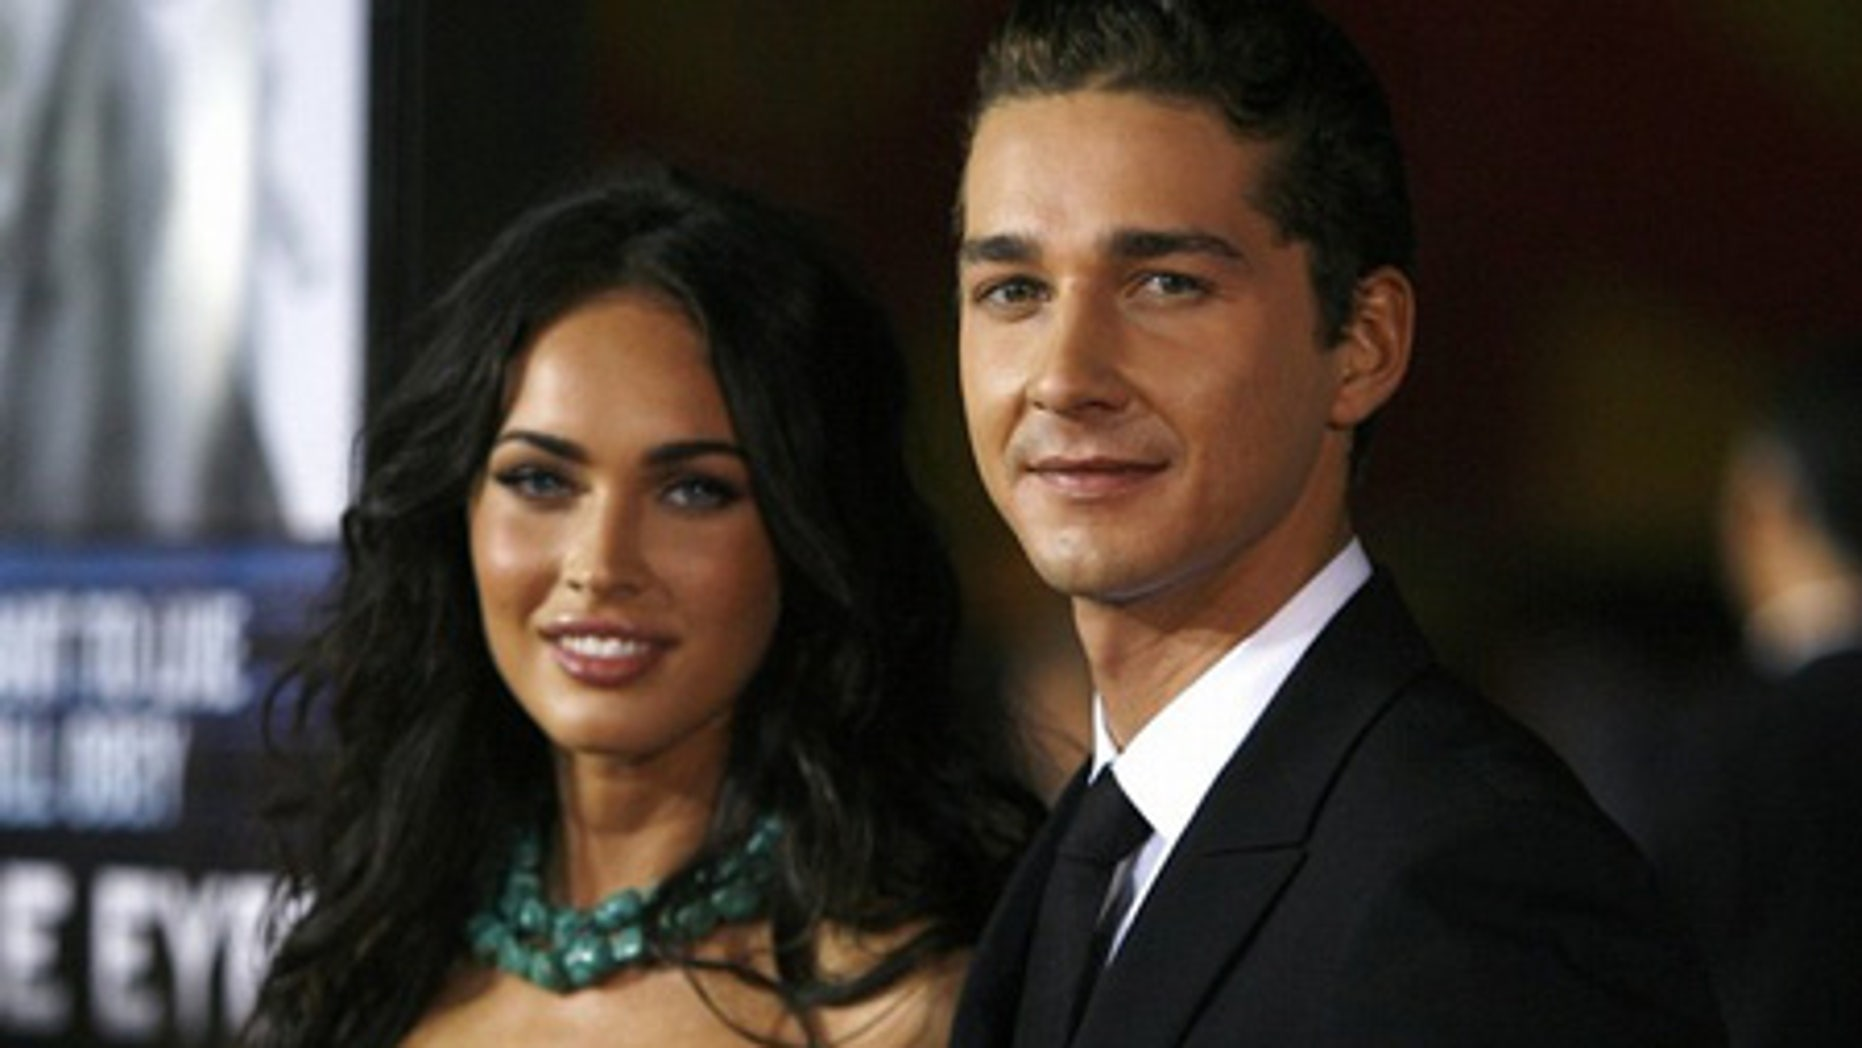 Megan Fox reveals he had fled with former star Shia LaBeouf.